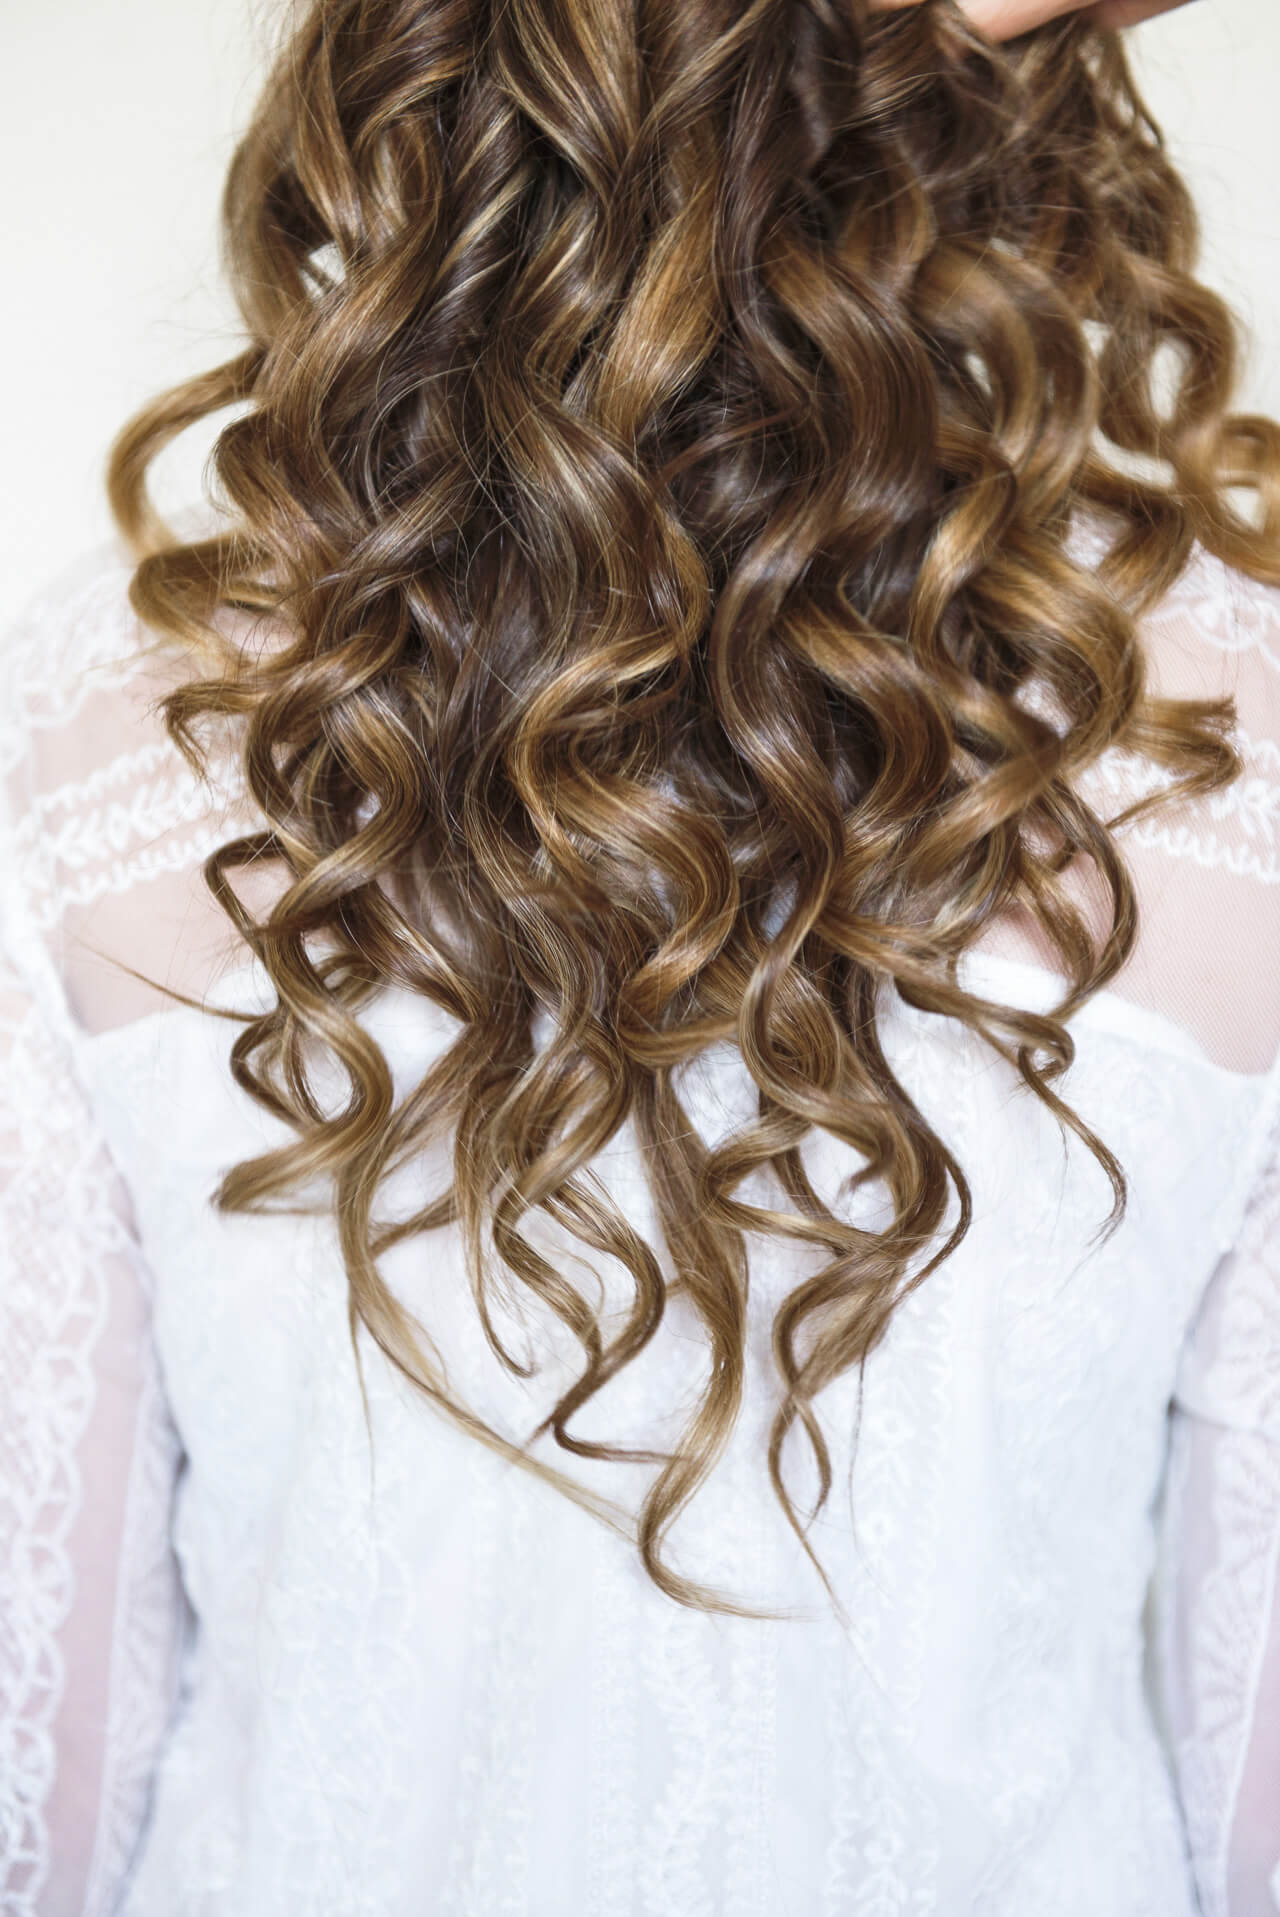 lots of spiral curls